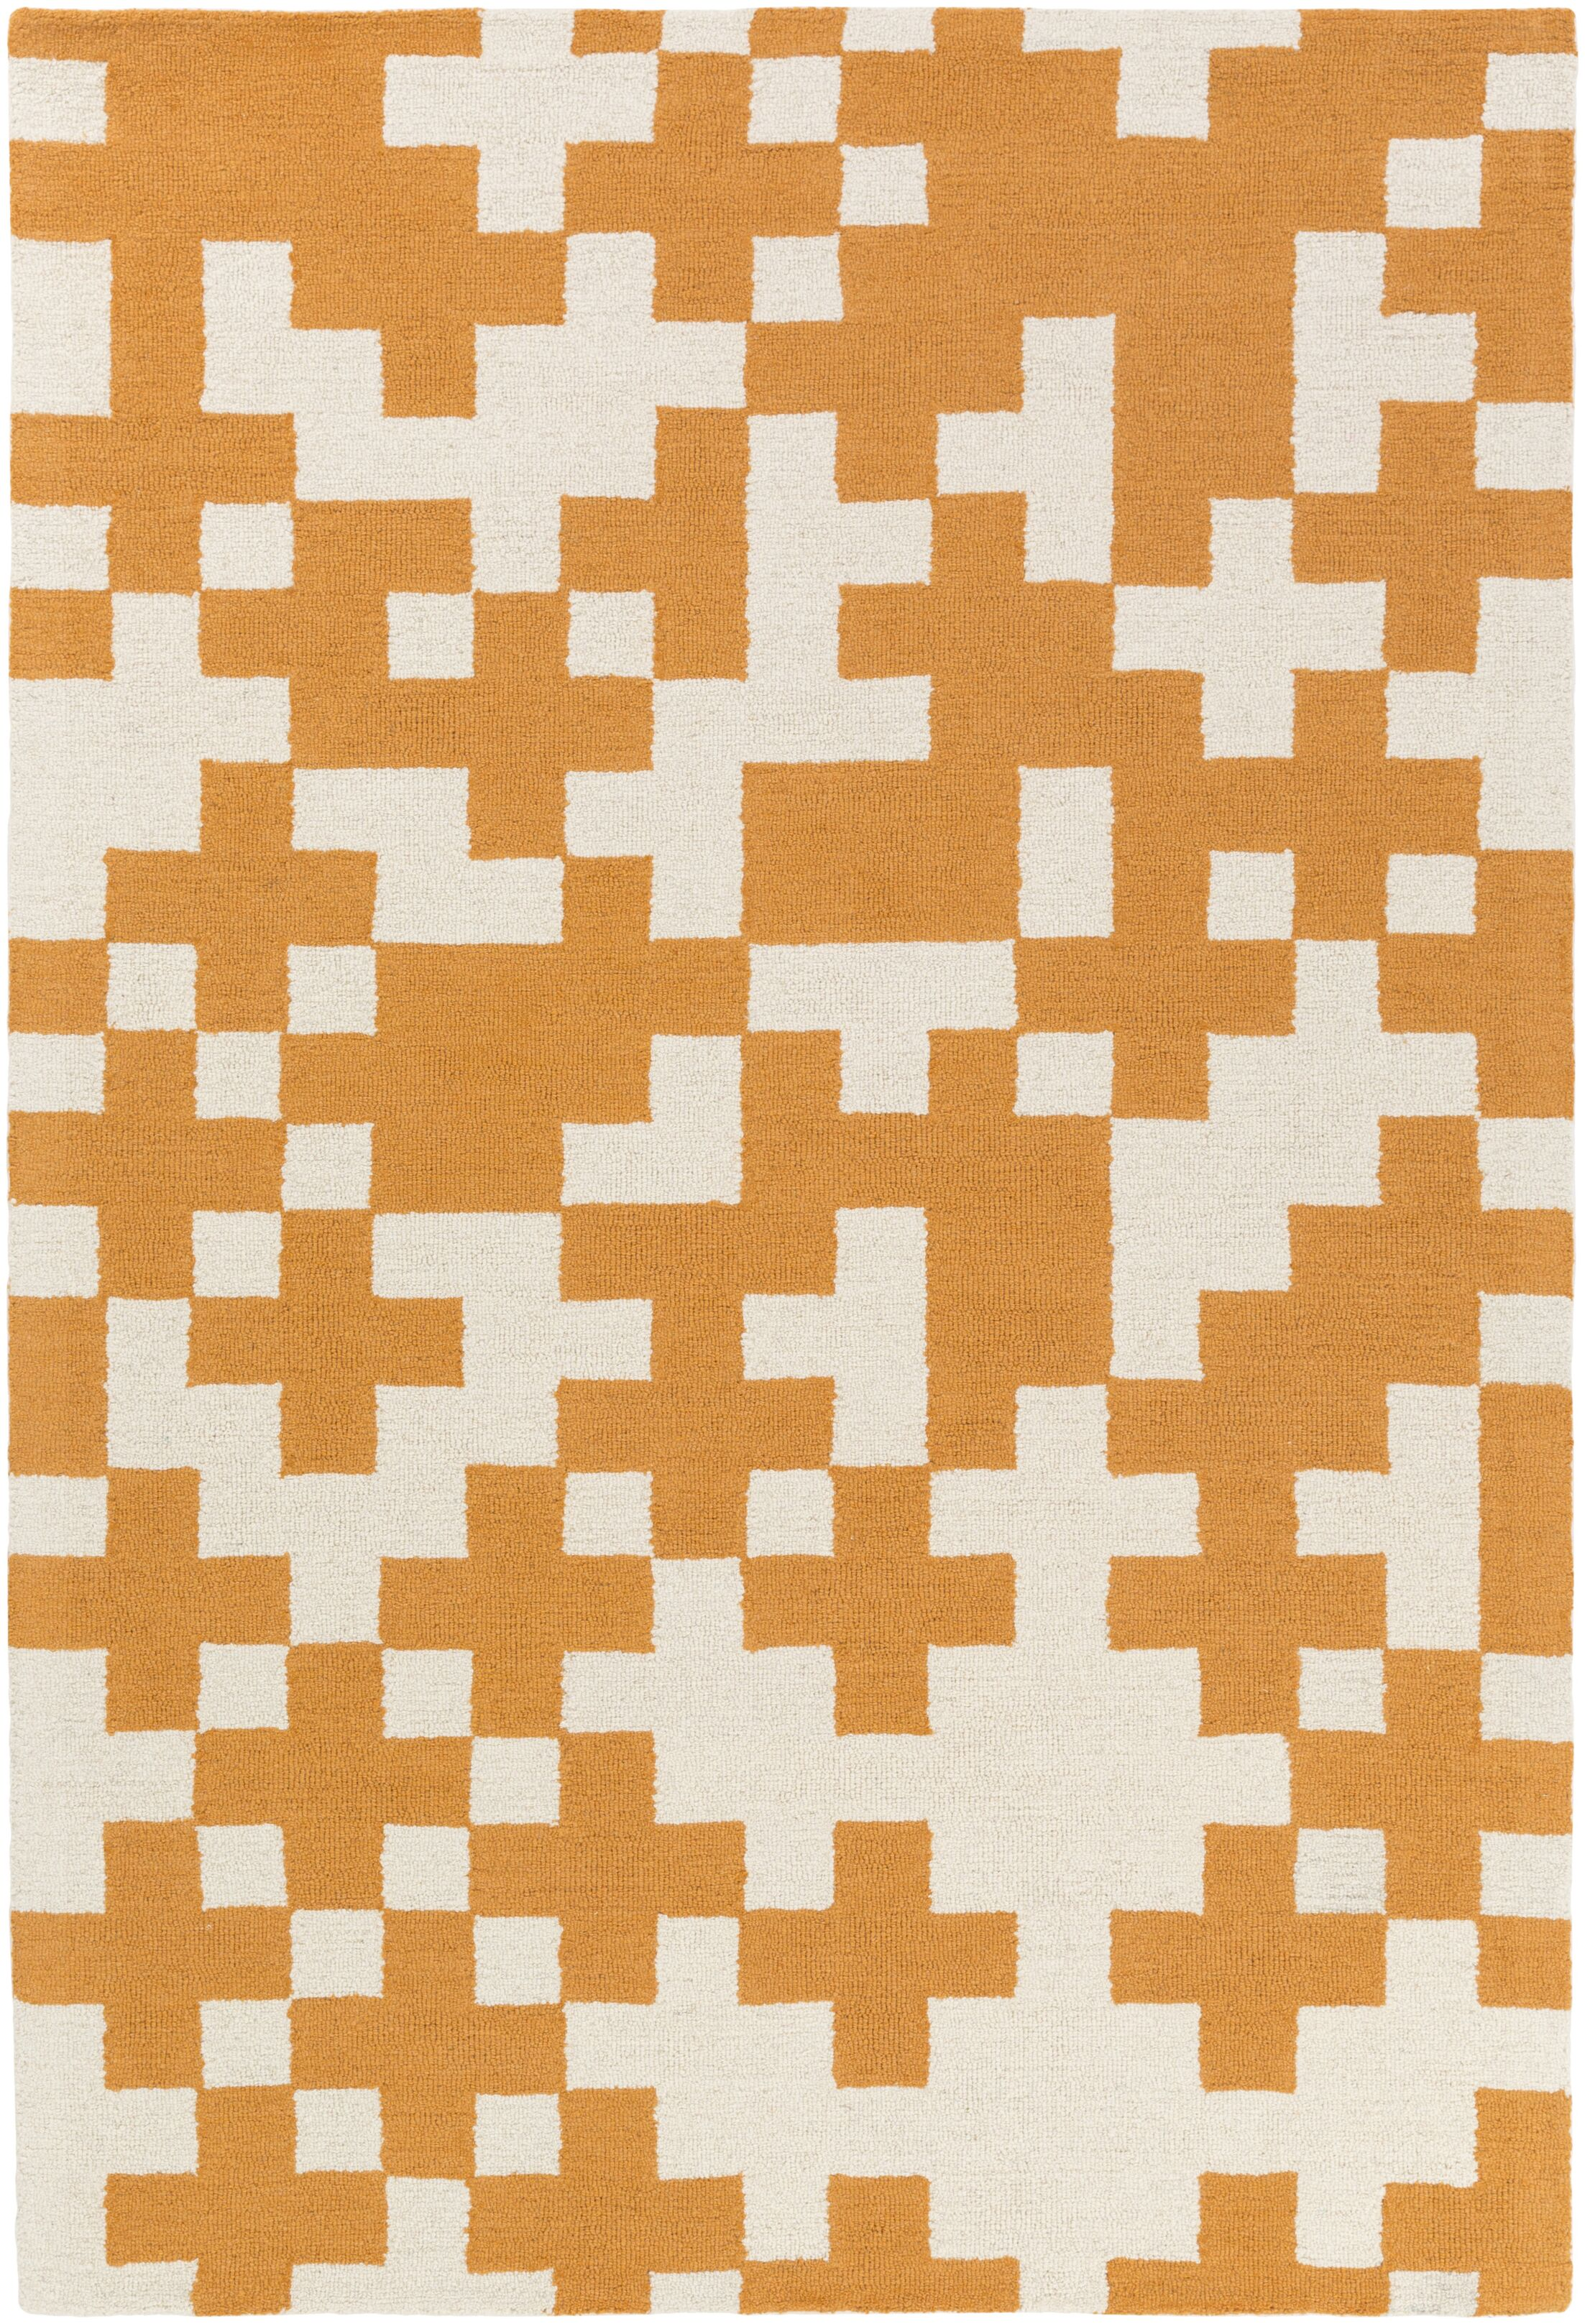 Youngman Hand-Crafted Orange/White Area Rug Rug Size: Runner 2'3